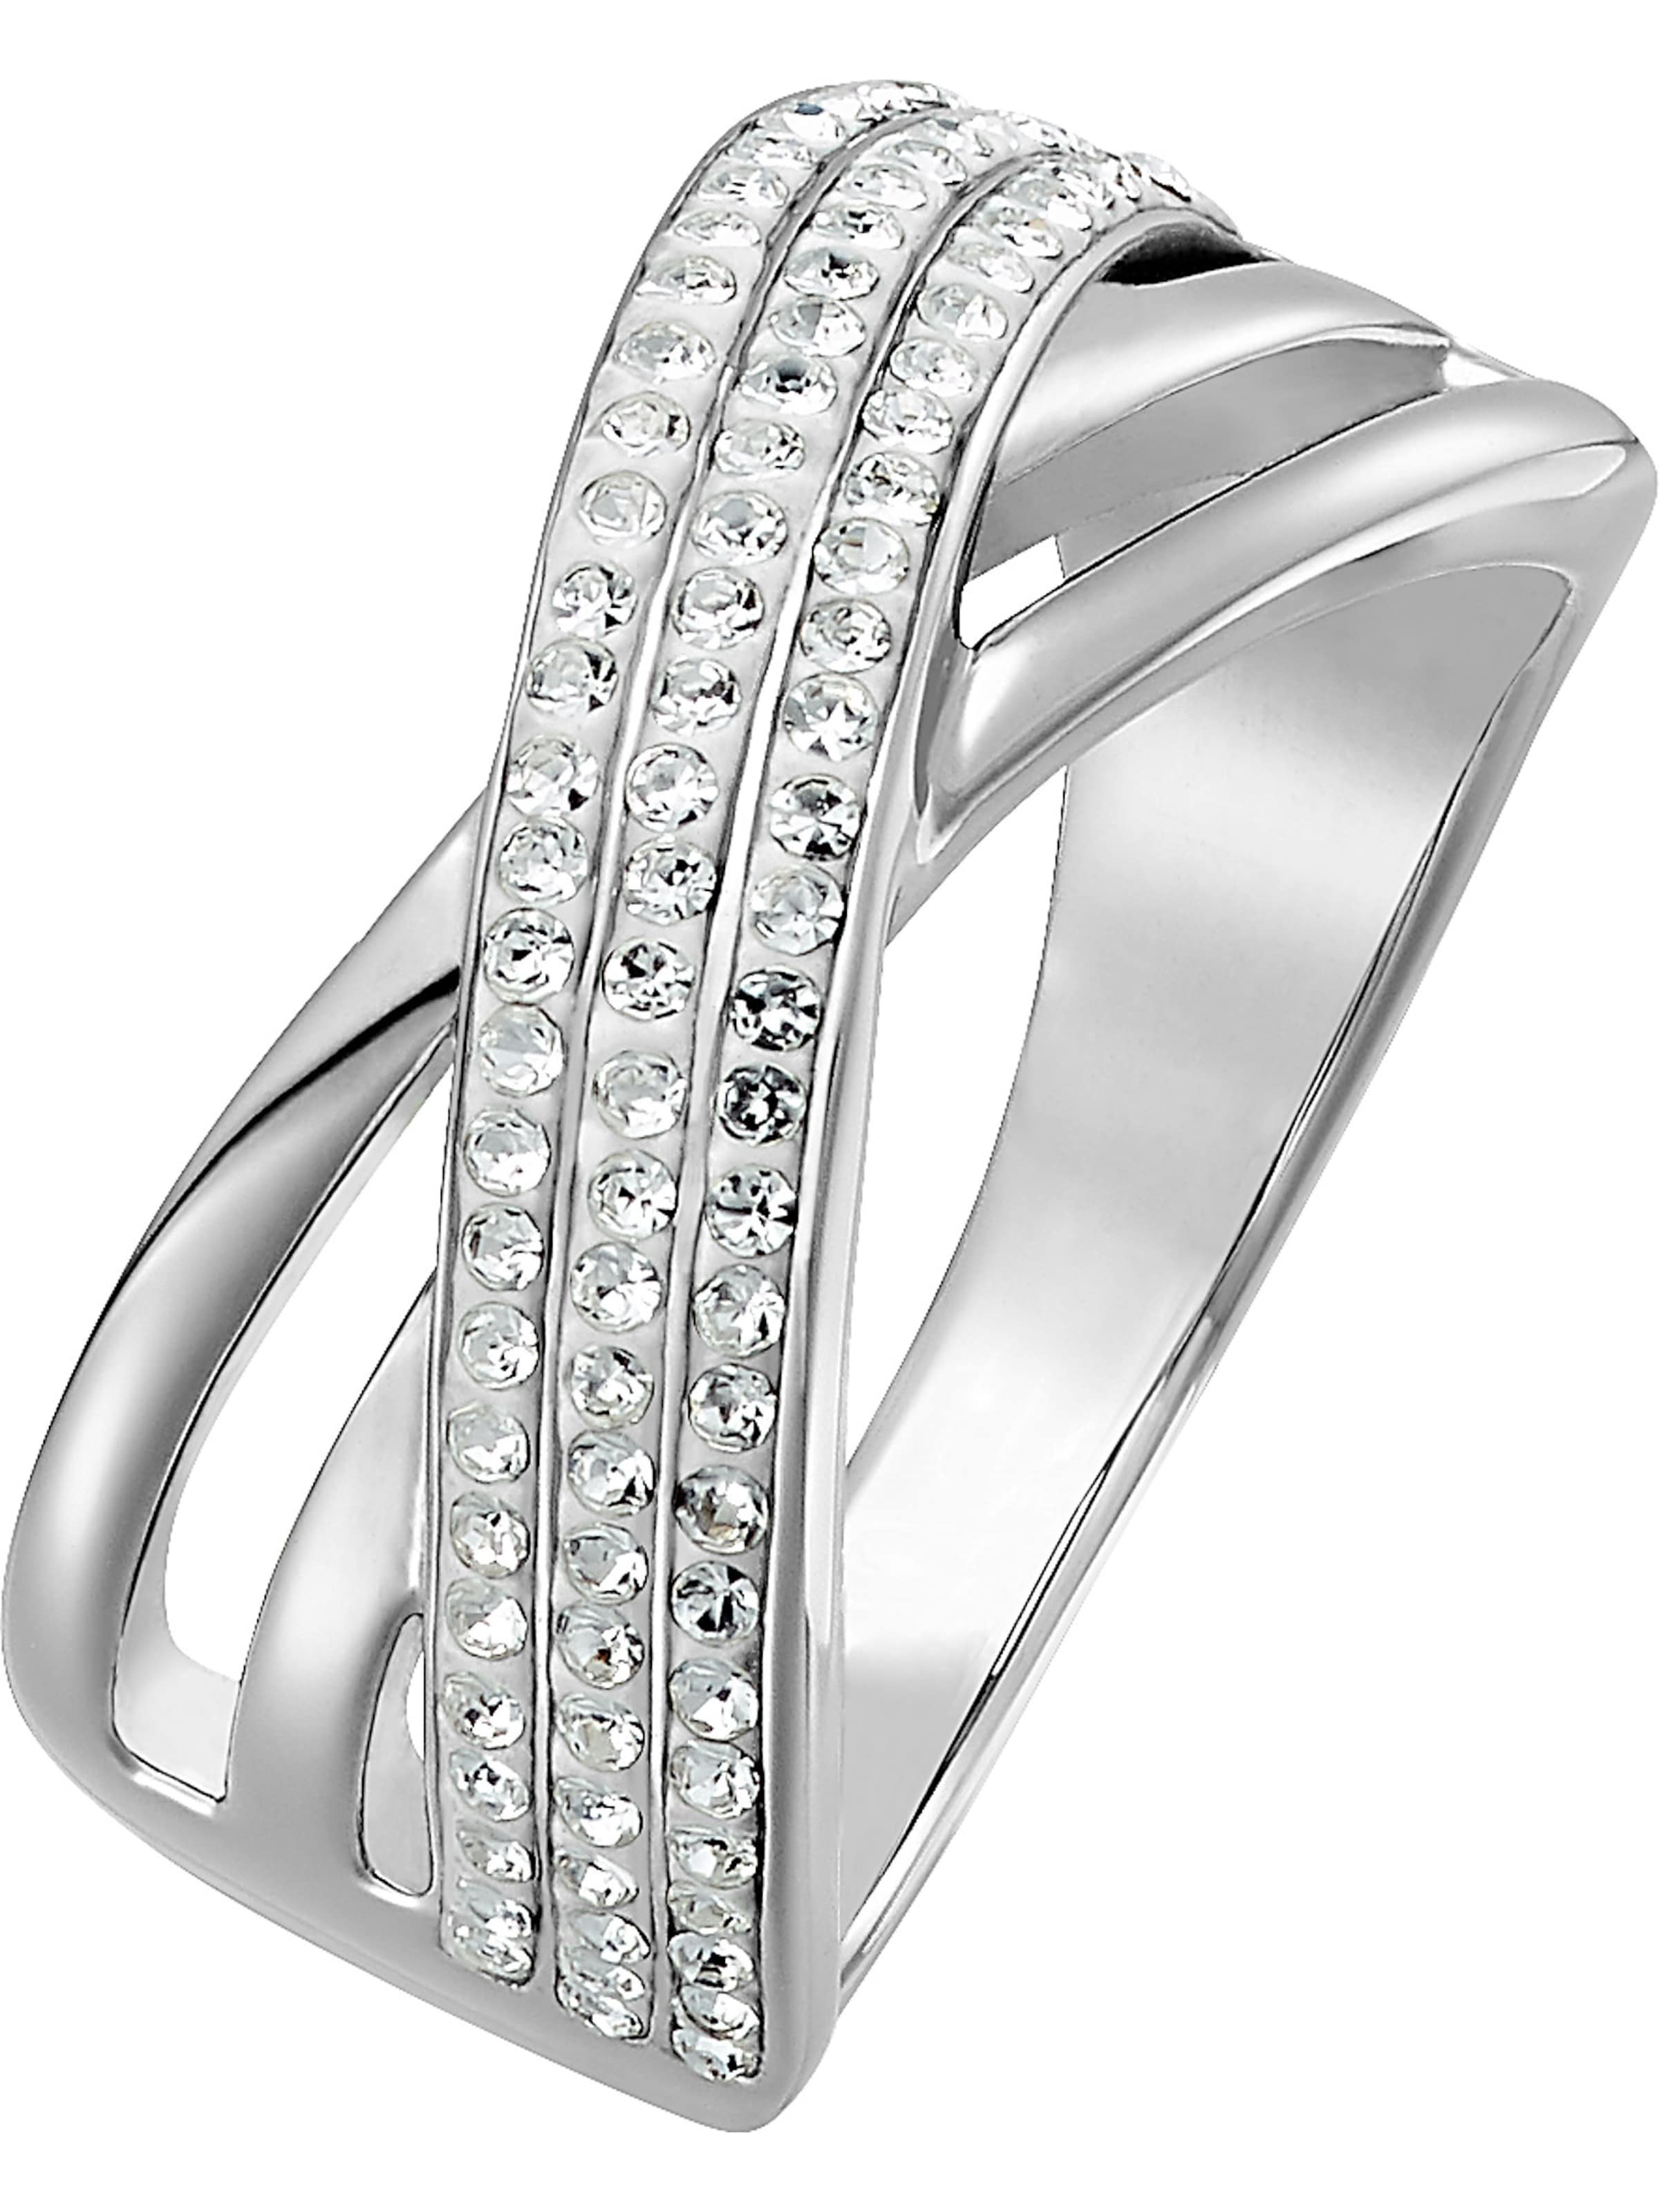 In Silber C collection collection Ring C iZPukTOX